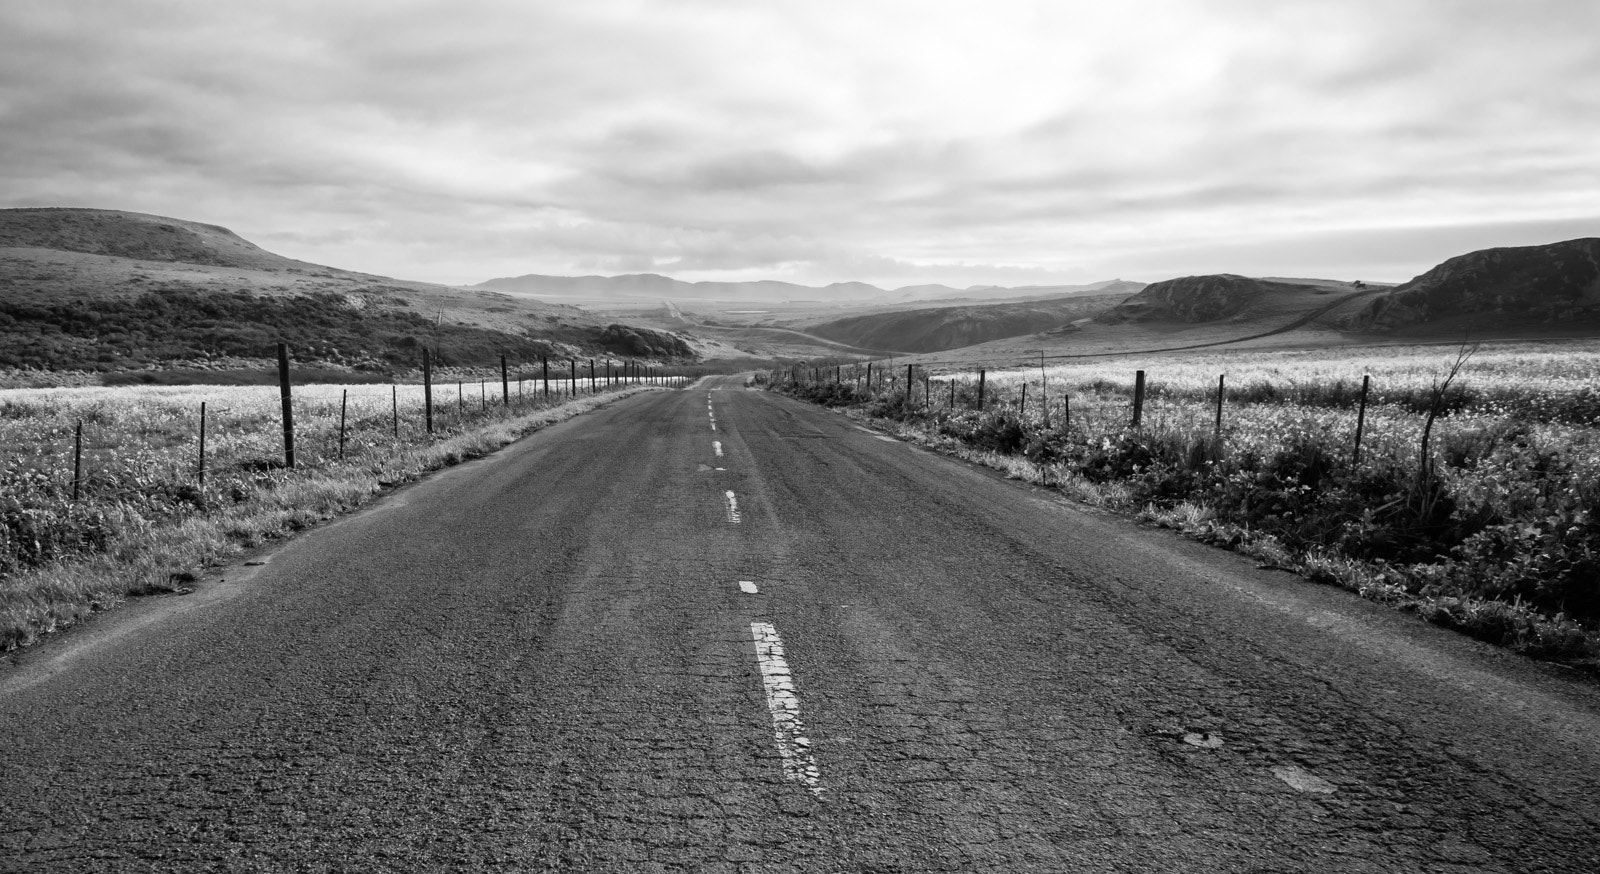 Photograph On the Road, Point Reyes by Rich Shelton on 500px